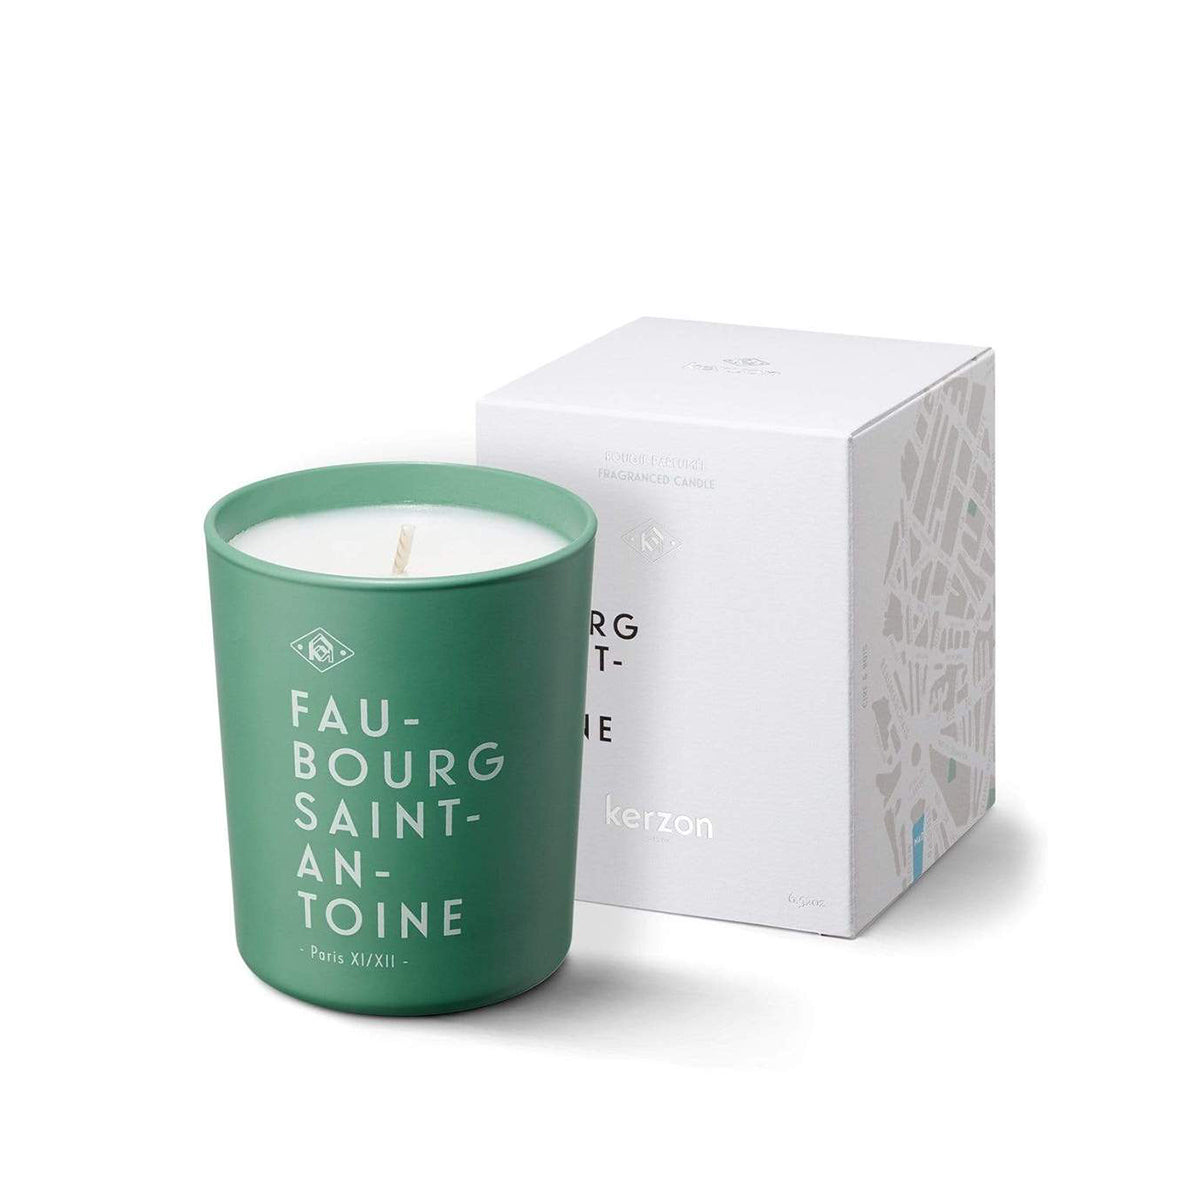 Faubourg Saint Antoine Candle